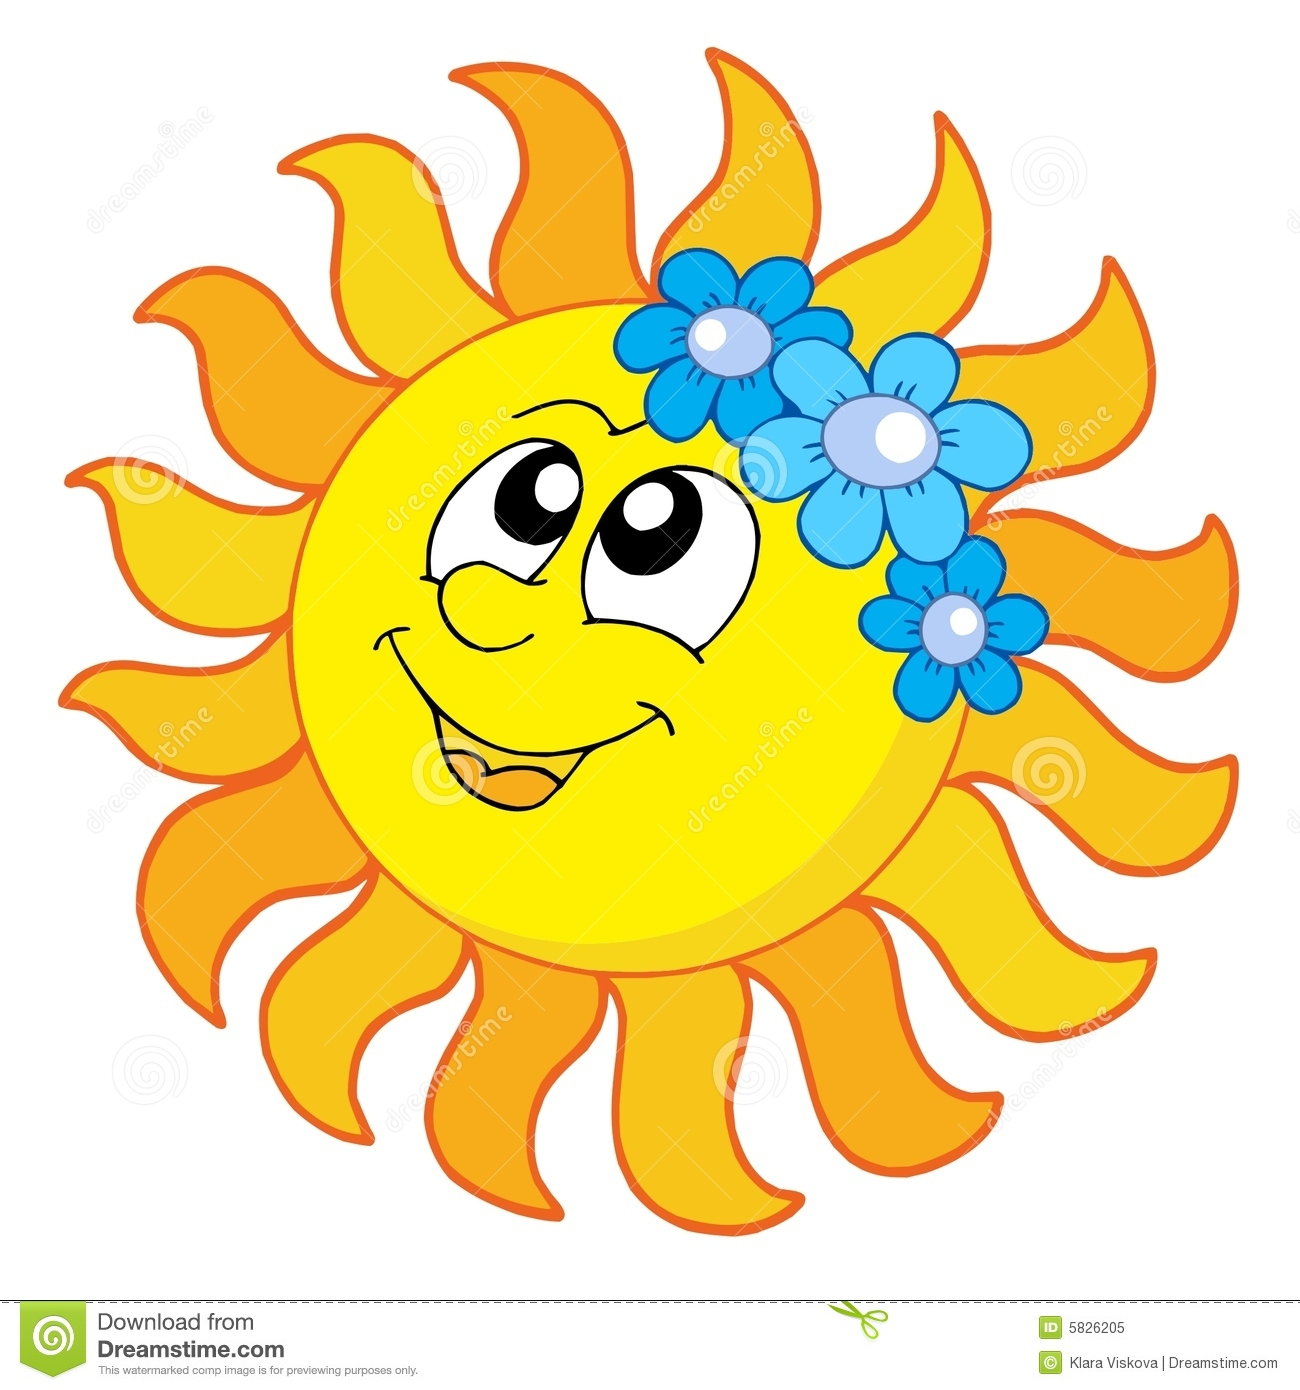 Smiling sun images - Royalty Free Stock Photo Download Smiling Sun